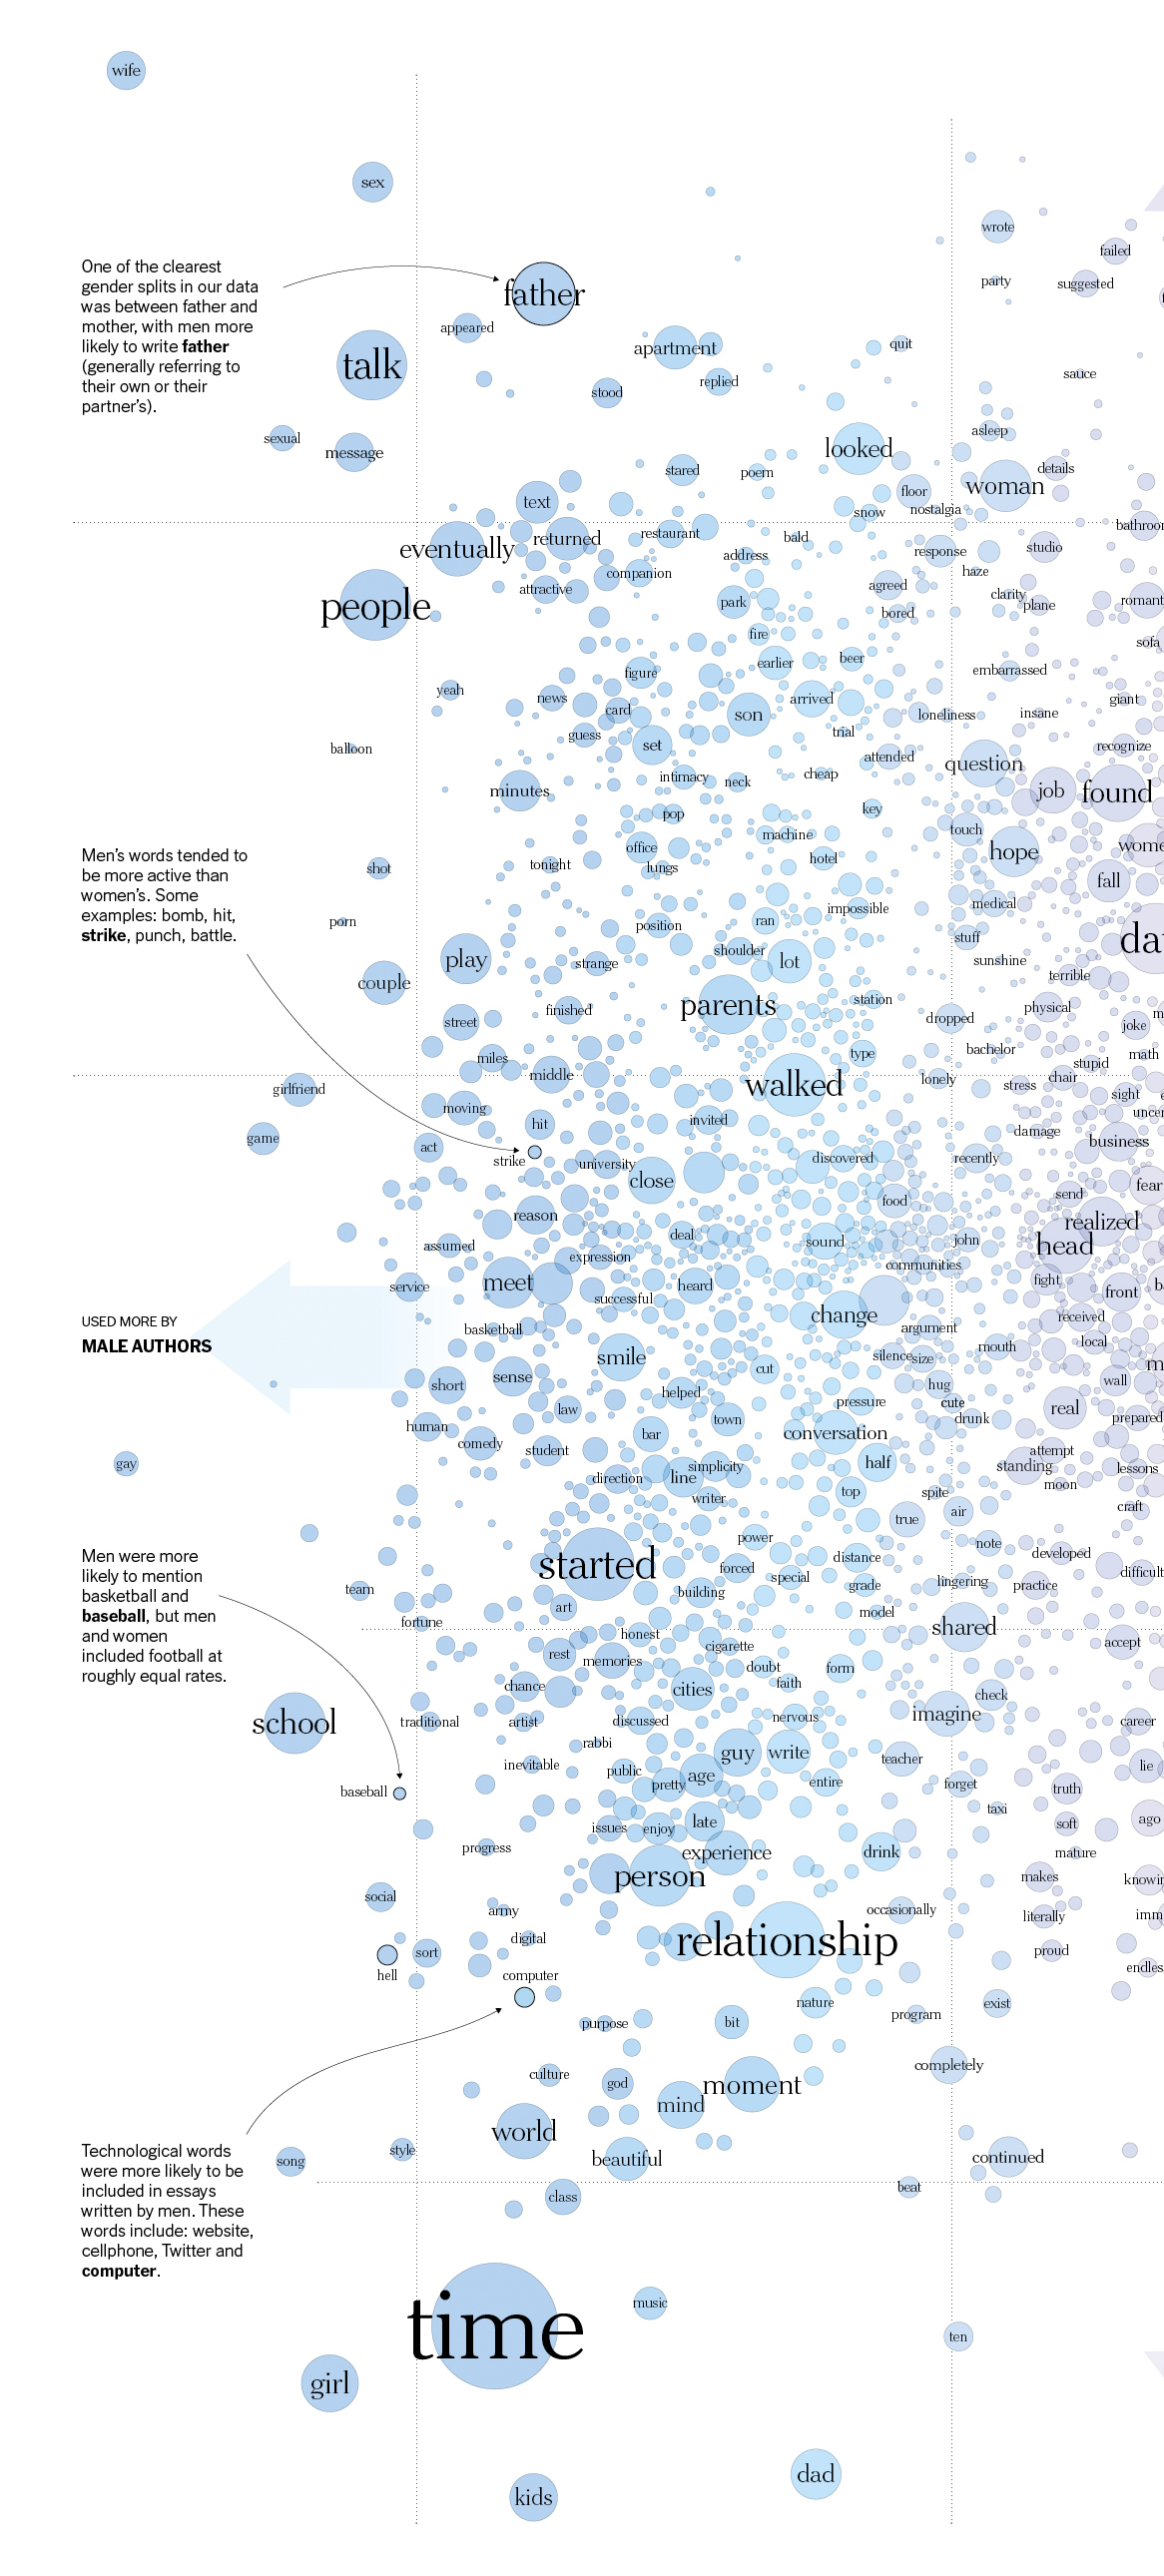 male-female-writing-difference-words-josh-katz-9